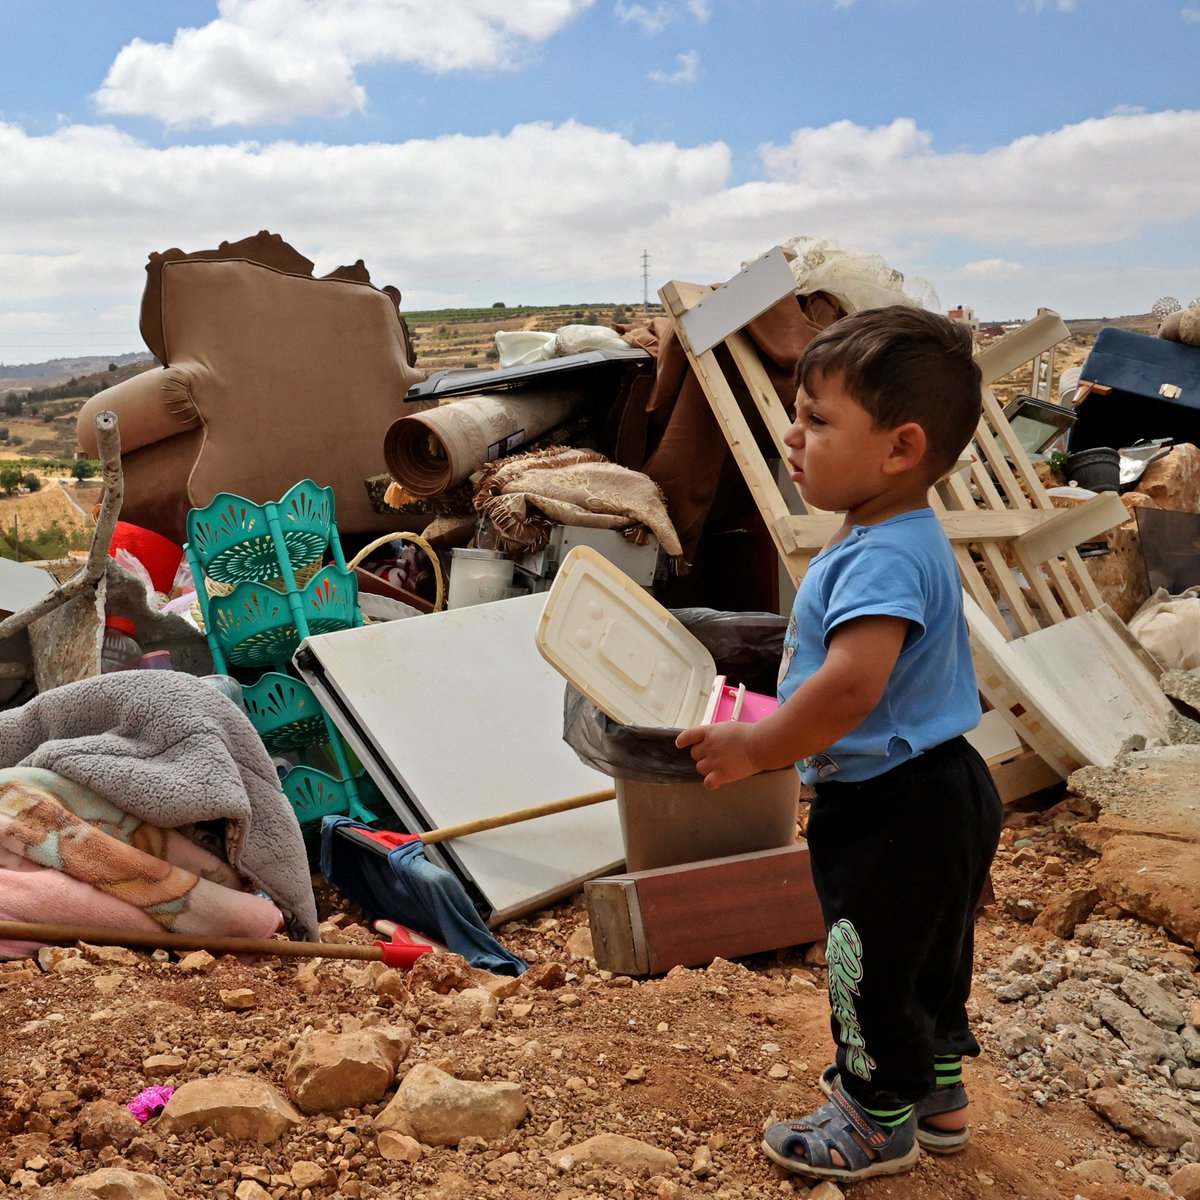 Israeli forces demolished at least one Palestinian home in the occupied West Bank and issued orders to demolish several others near Hebron, impacting over 40 people.  Israel has displaced over 500 Palestinians in 2021, and advanced plans for hundreds of illegal settlement homes. https://t.co/AXZKw3nFc4